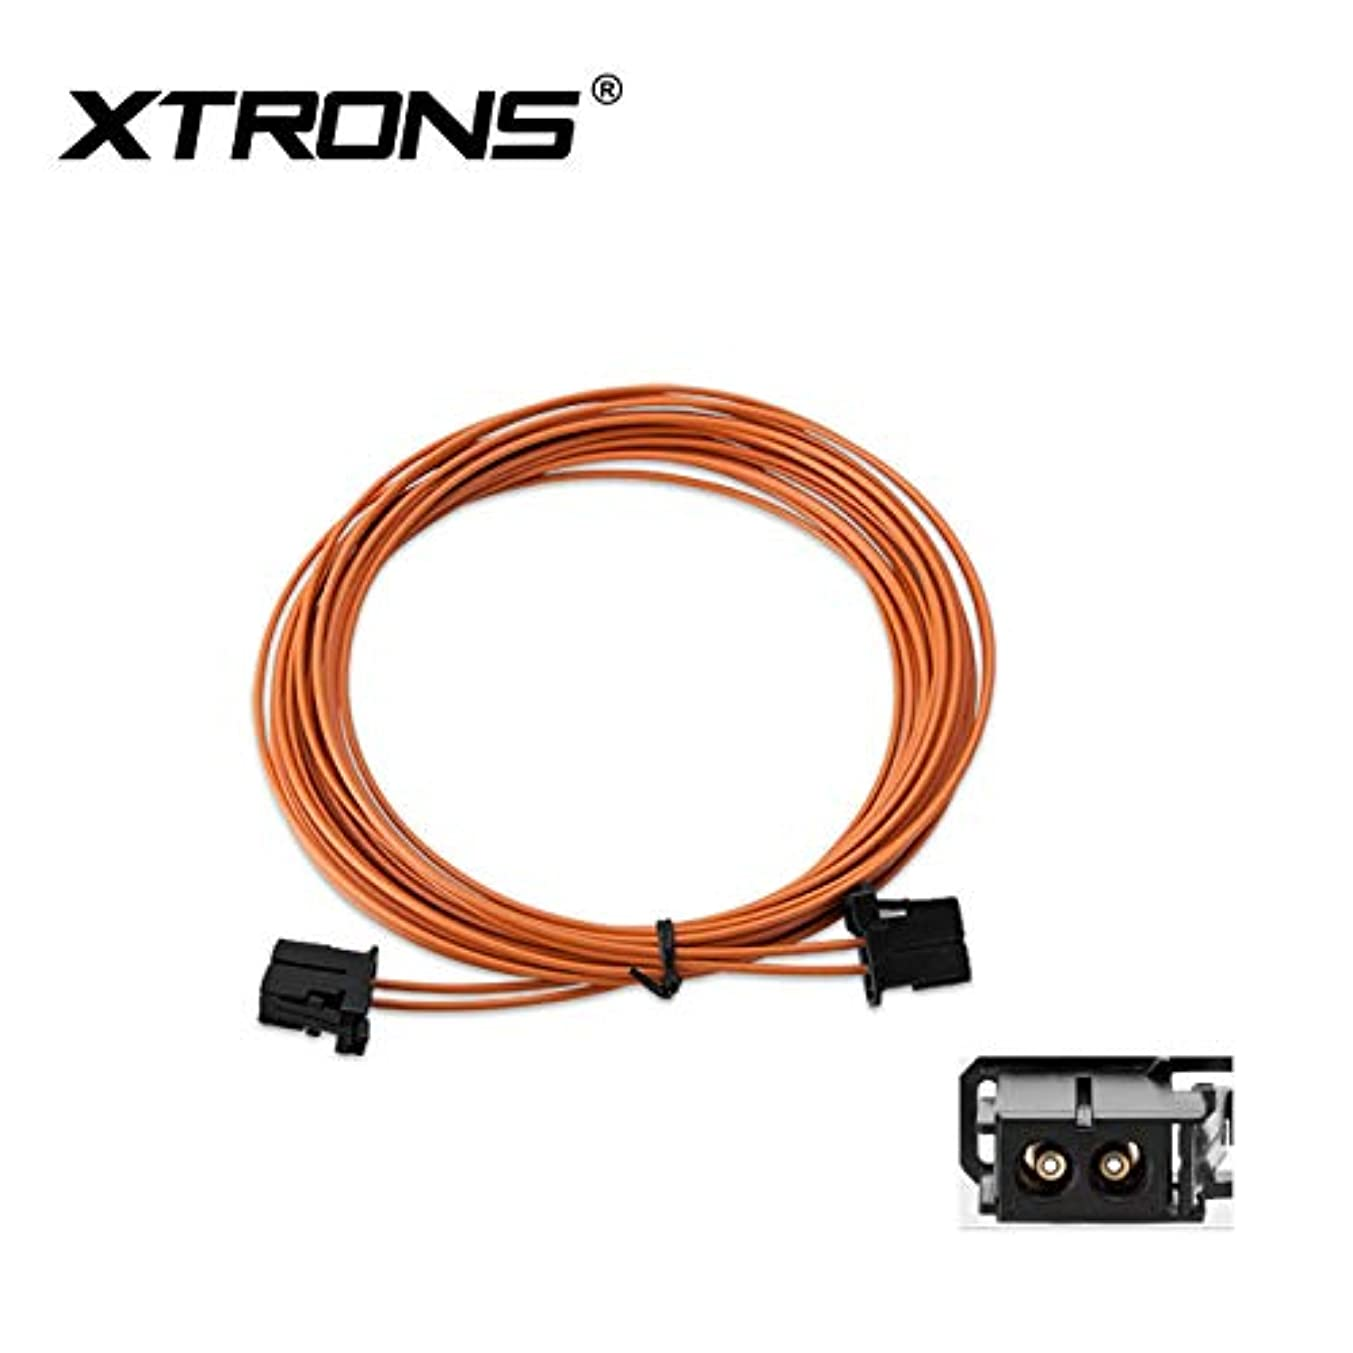 XTRONS 5m Most Fiber Optic Extension Cable Male to Male for Mercedes for BMW for Audi